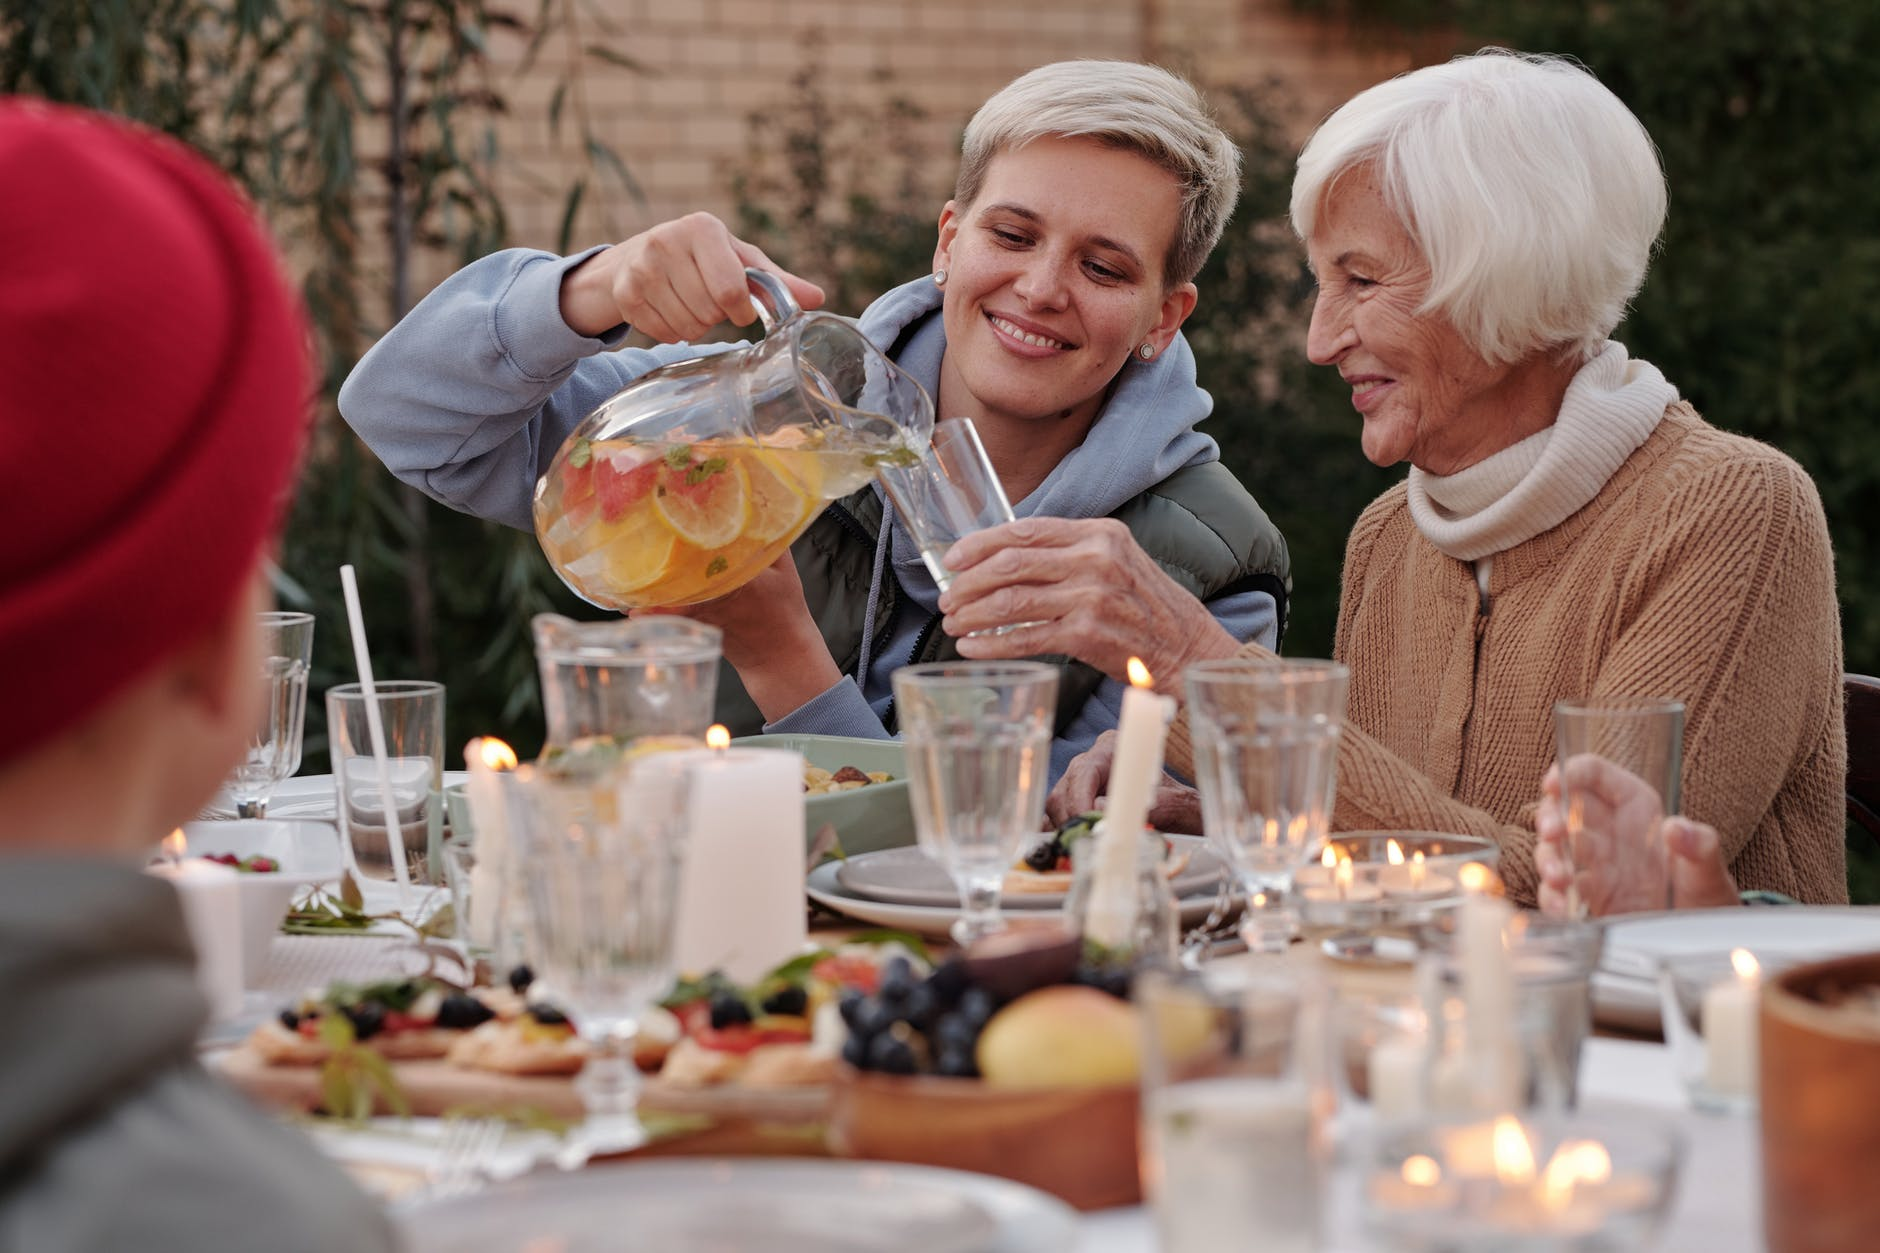 What Need To know About Nutrition For The Elderly?